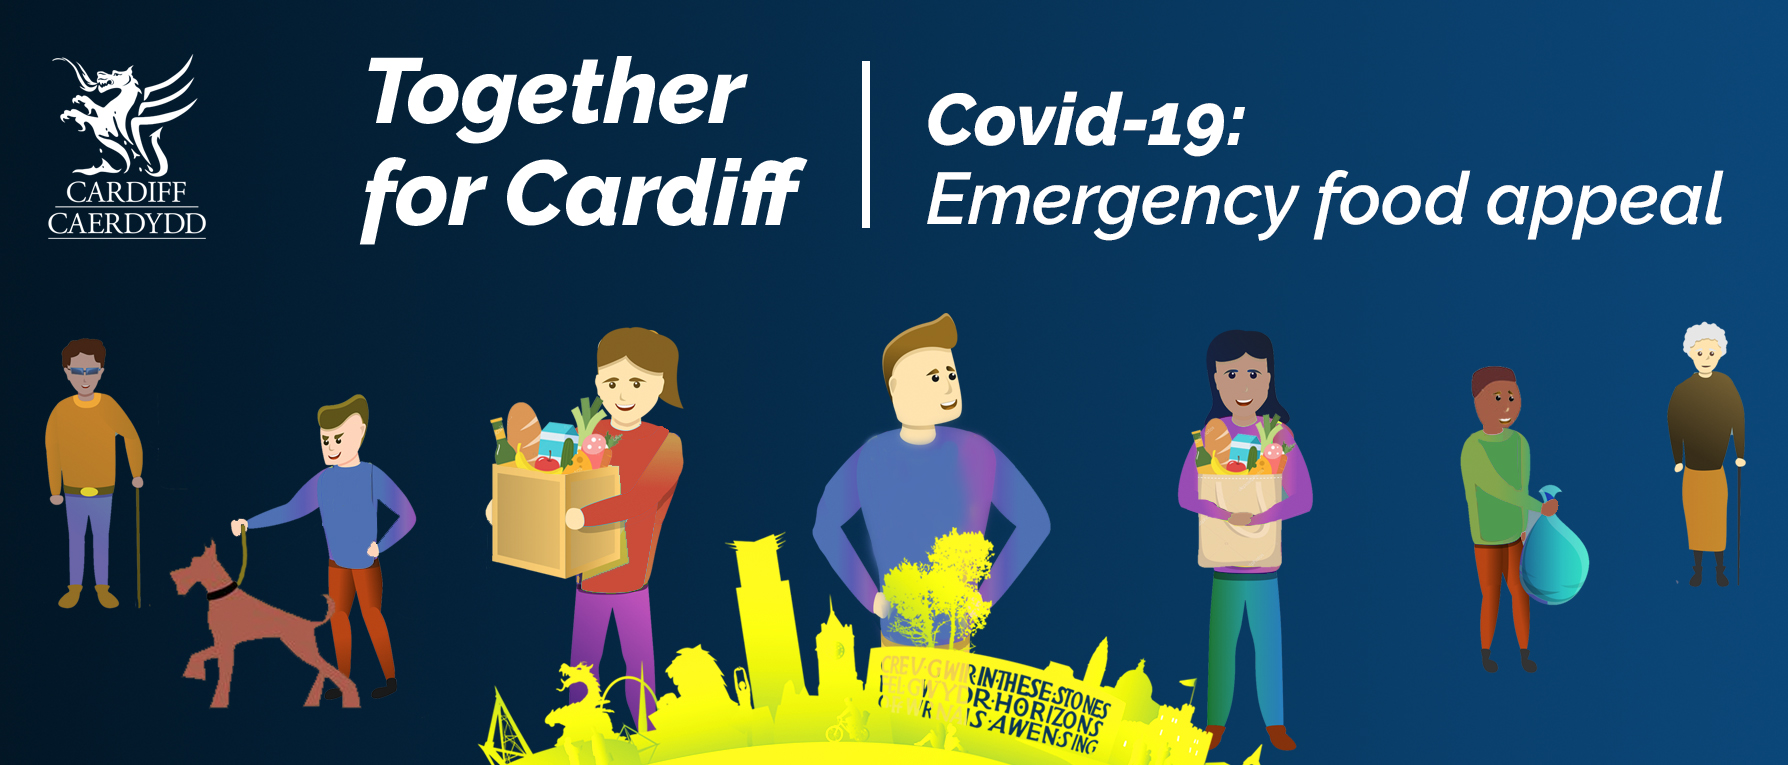 Cardiff Council Emergency Food Appeal